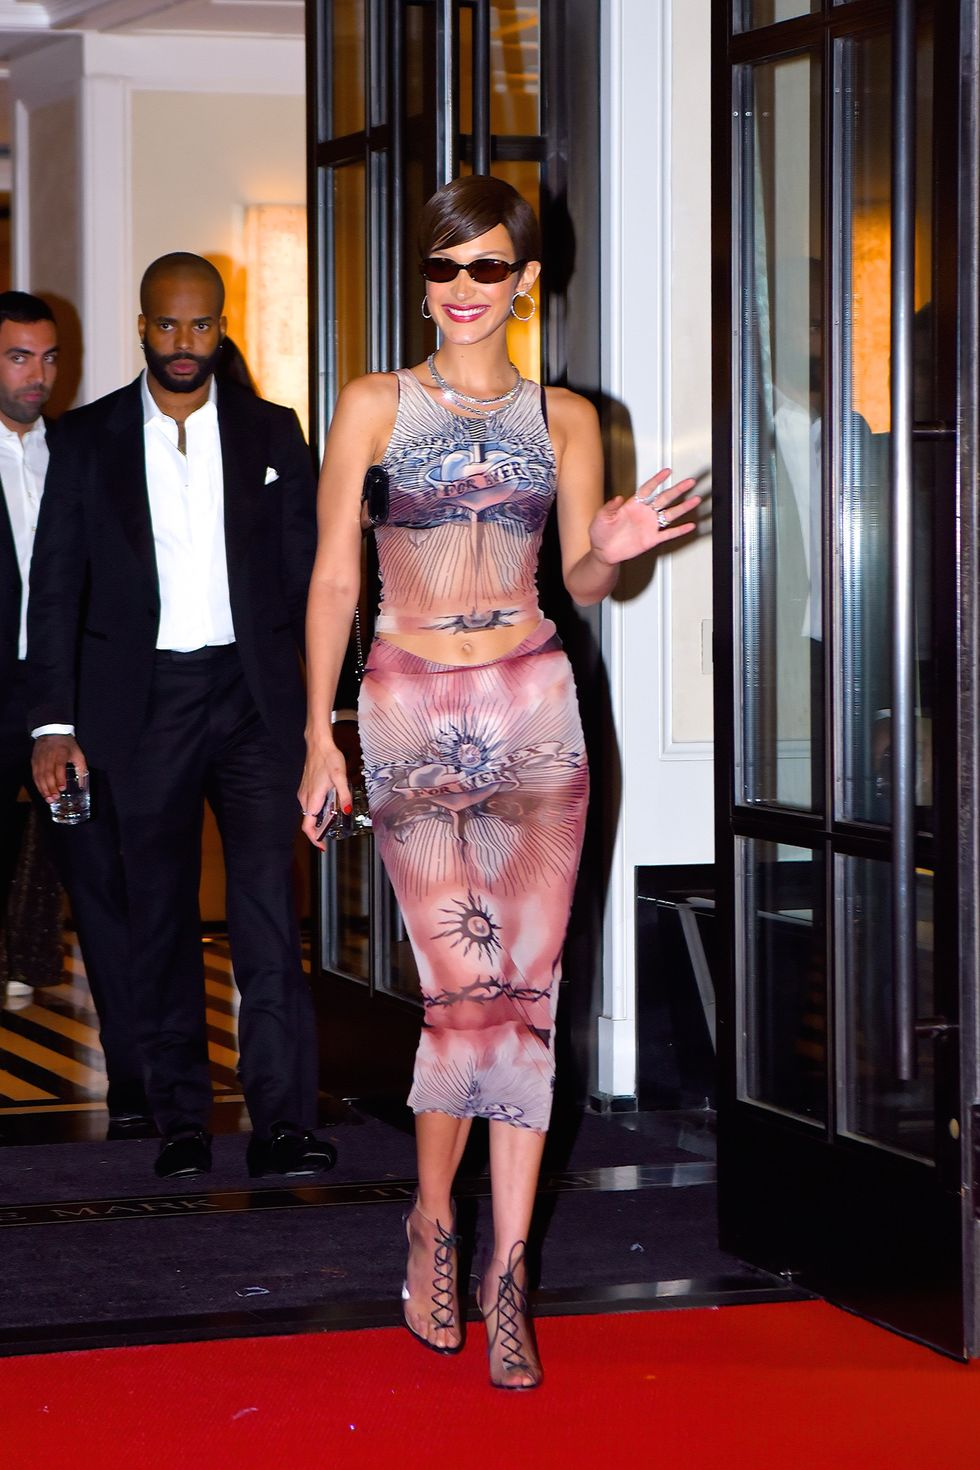 bella-hadid-seen-out-on-the-2019-met-gala-day-on-may-6-2019-news-photo-1568305878